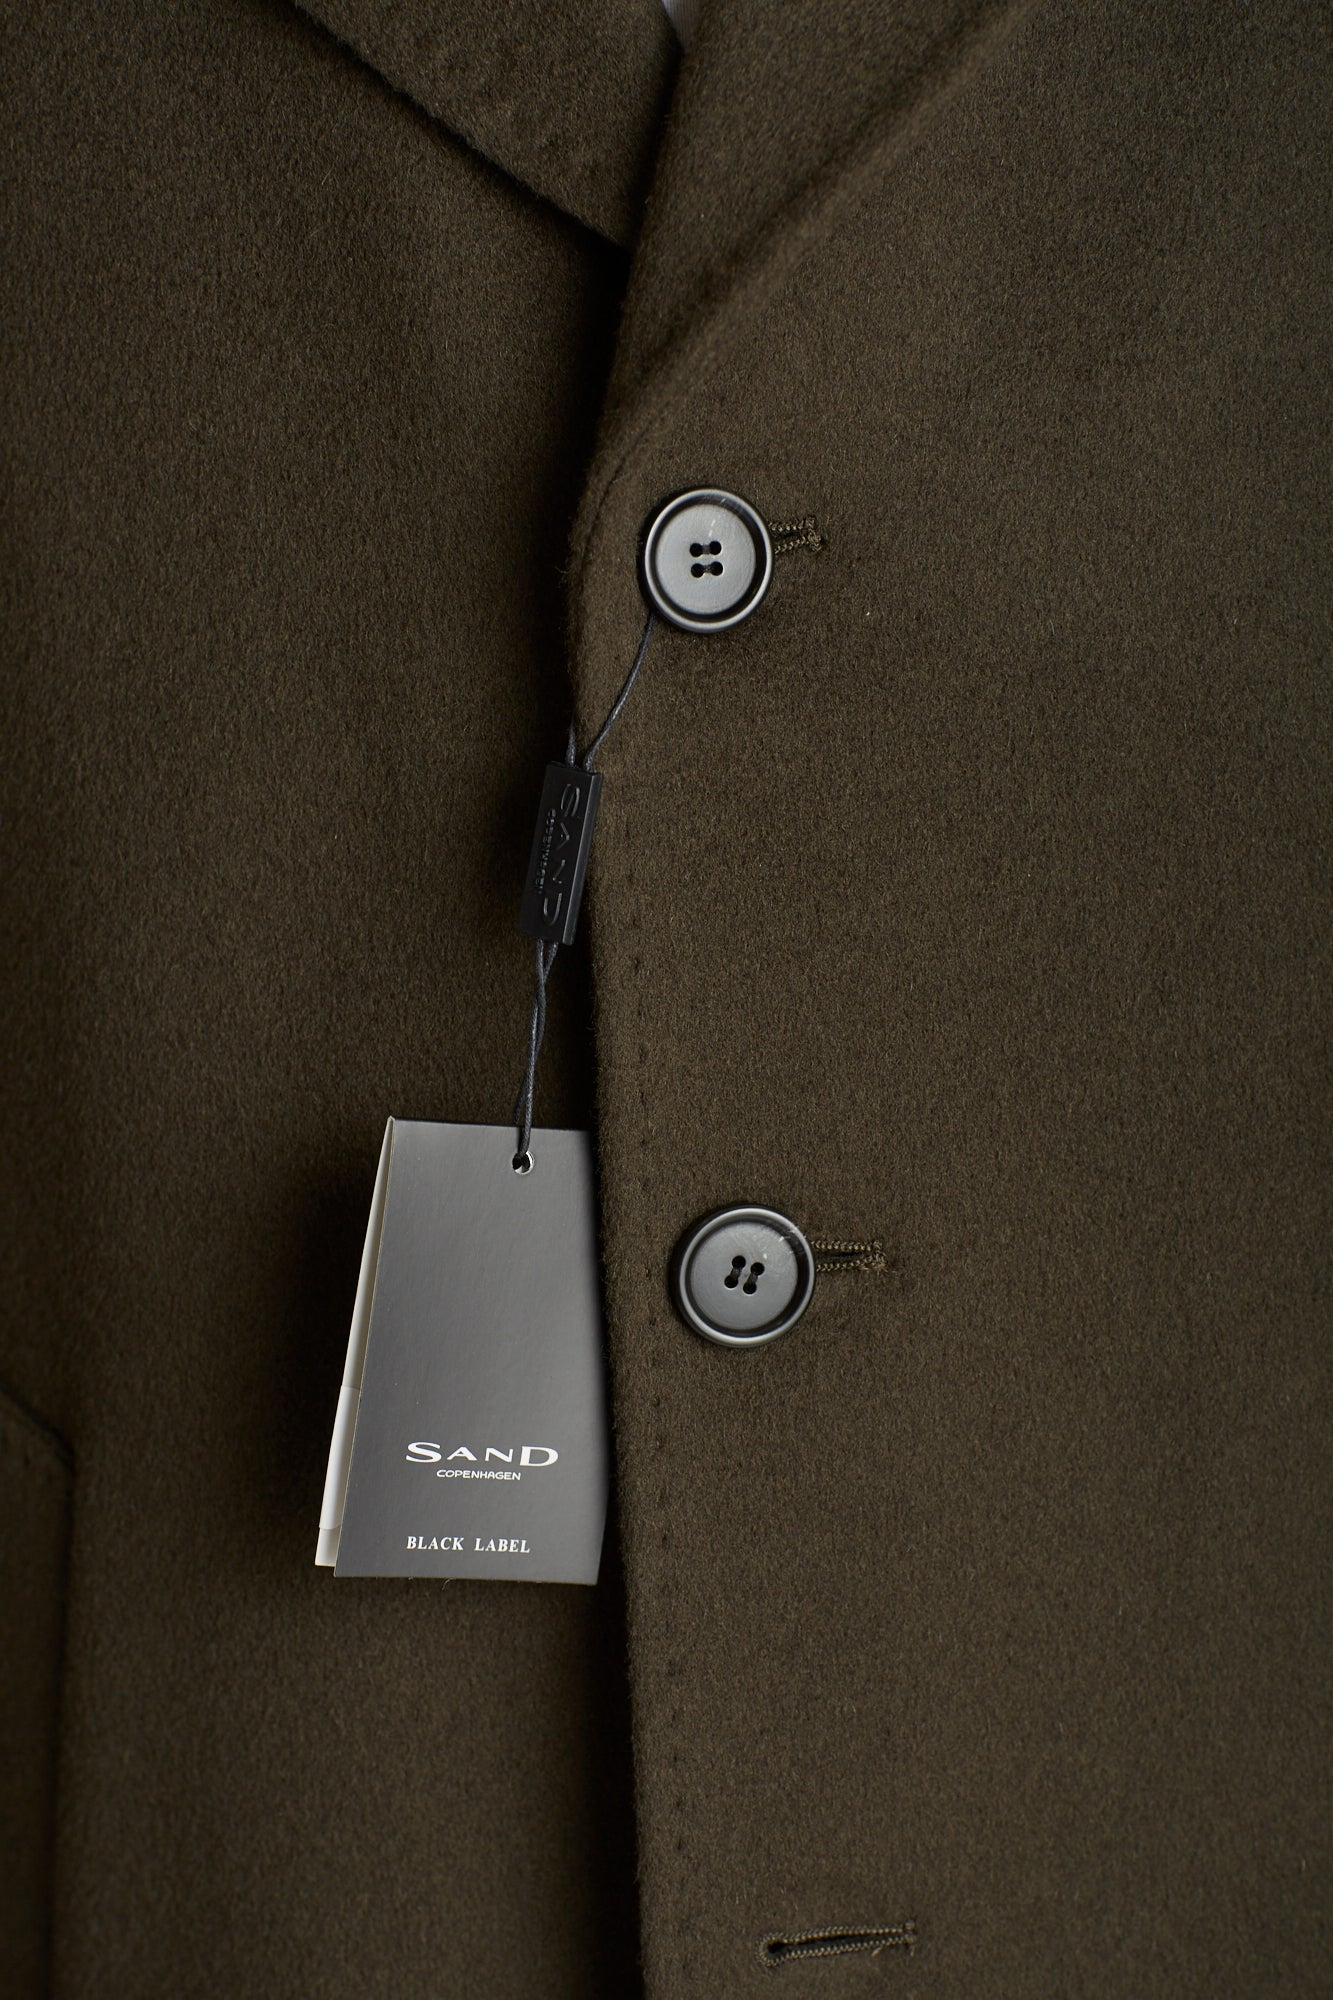 SAND Olive Green Wool-Cashmere Buttons